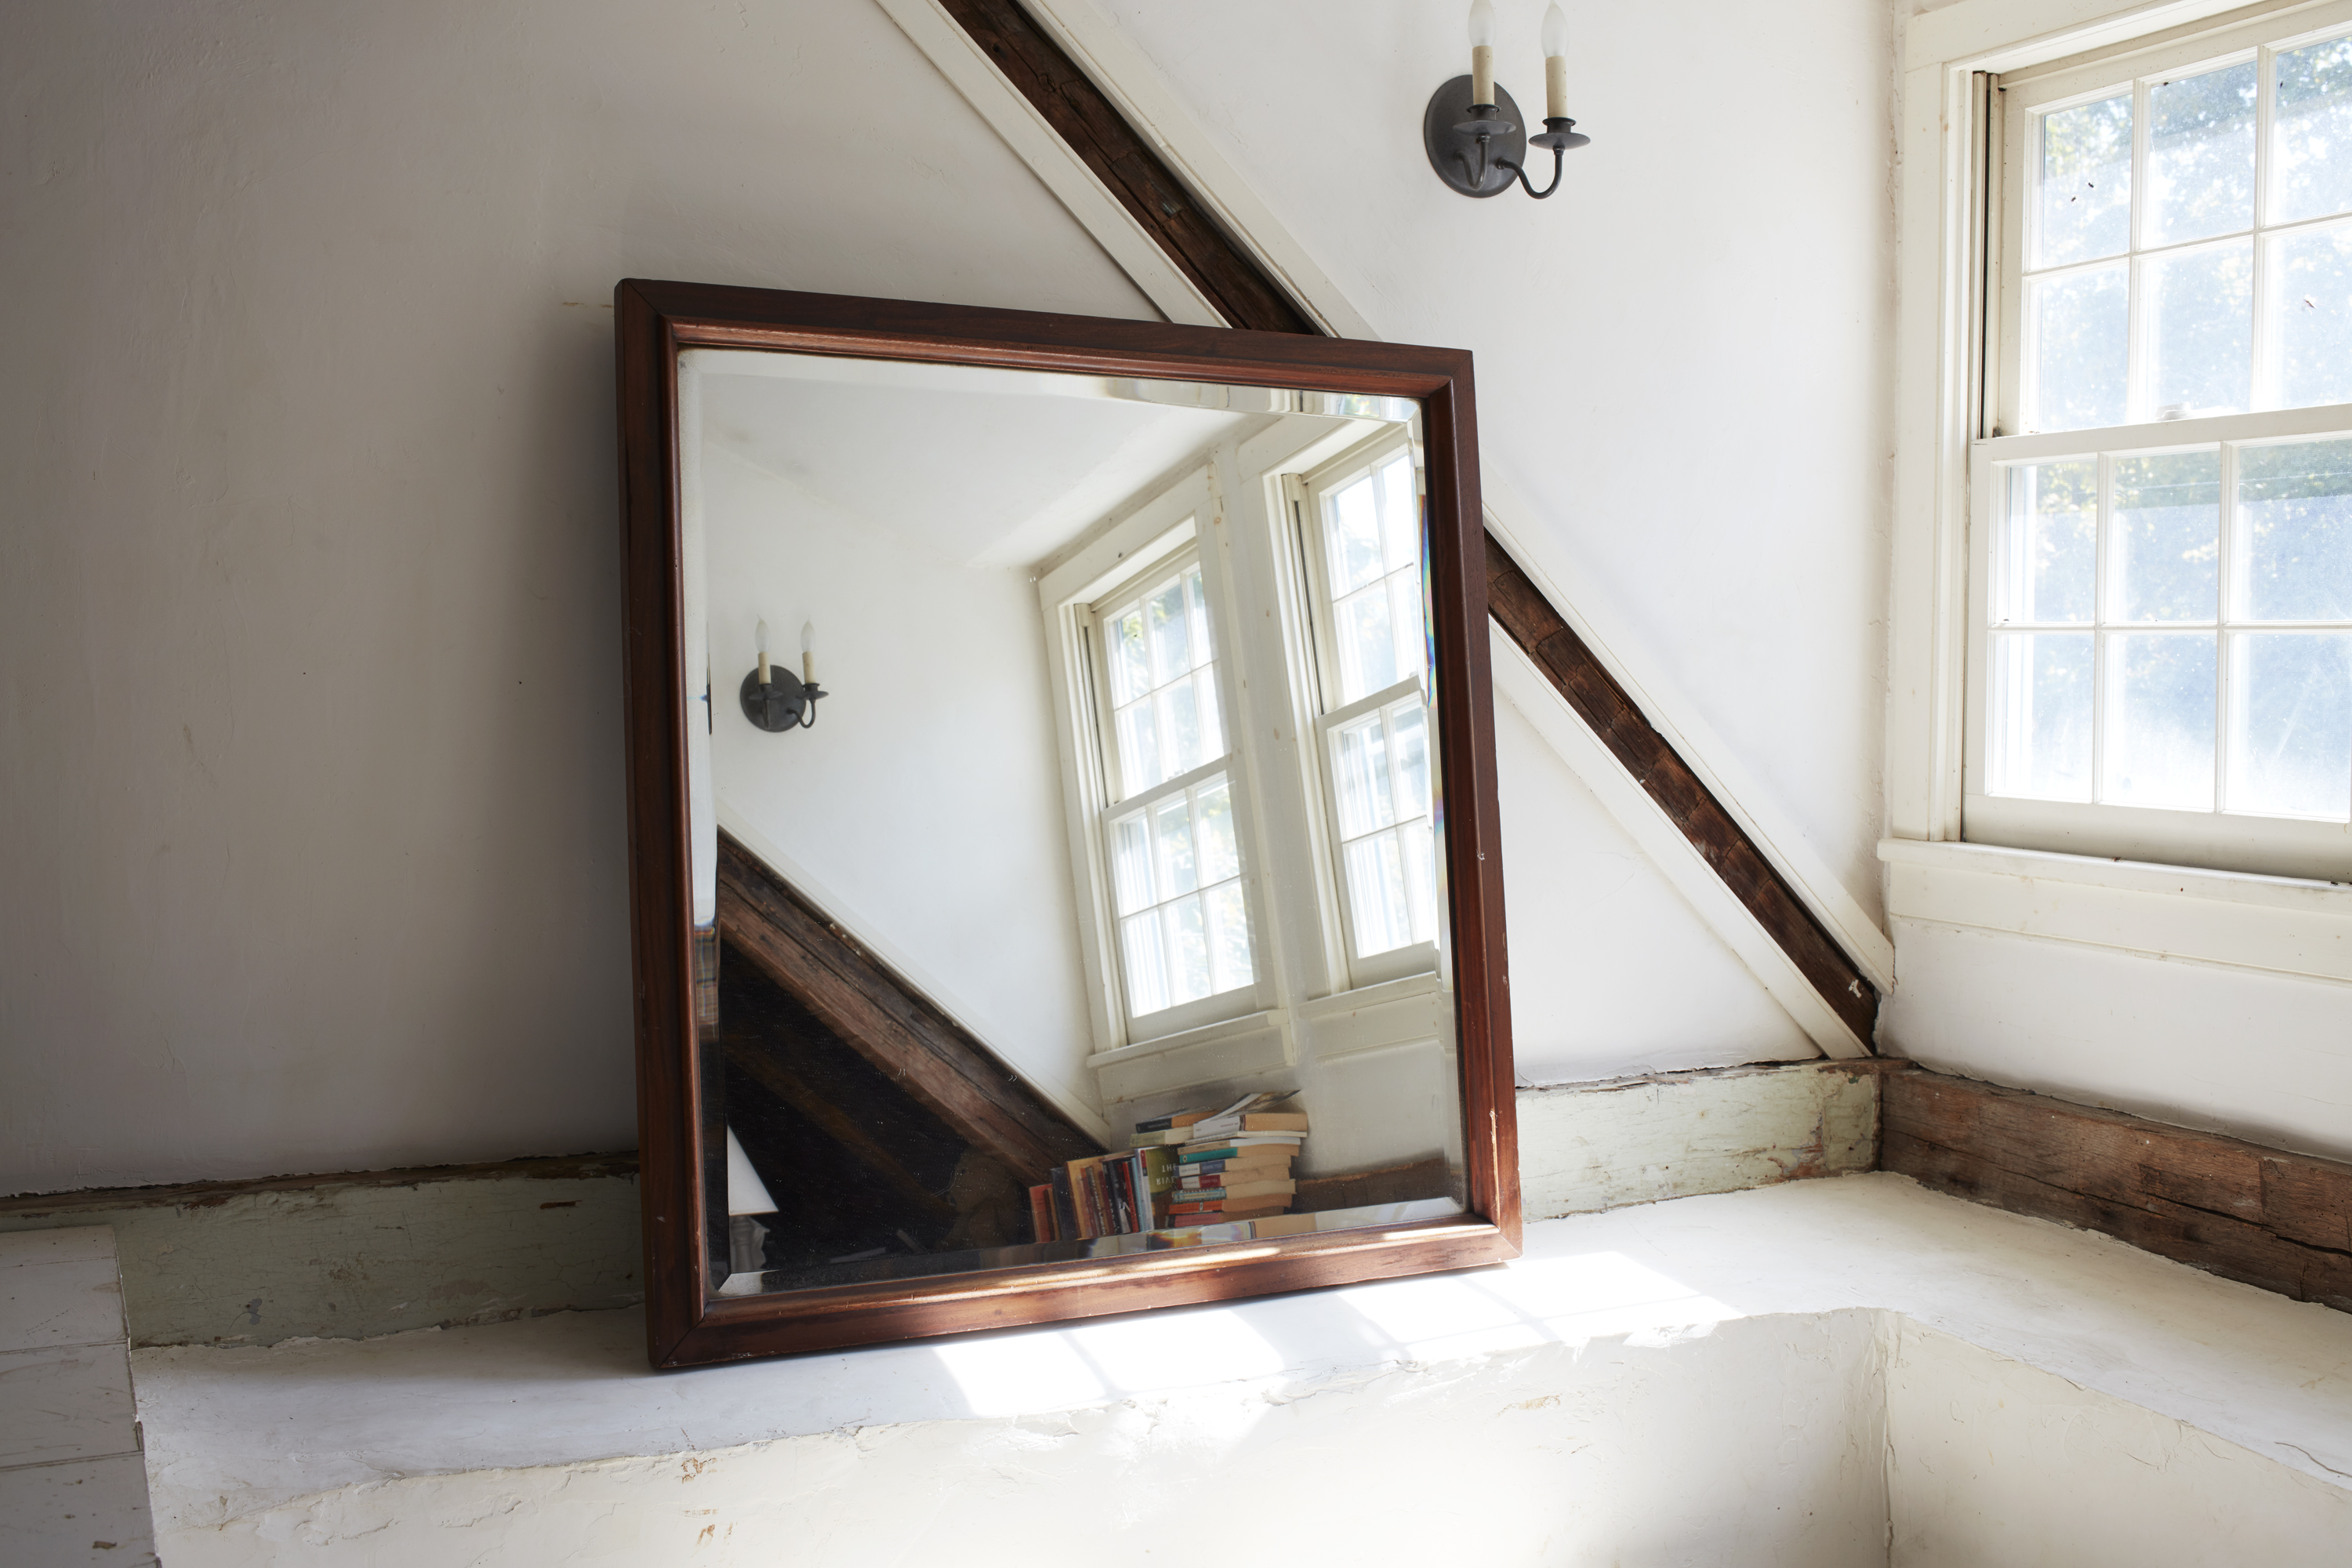 A square mirror stills beside windows and casts light into the room.